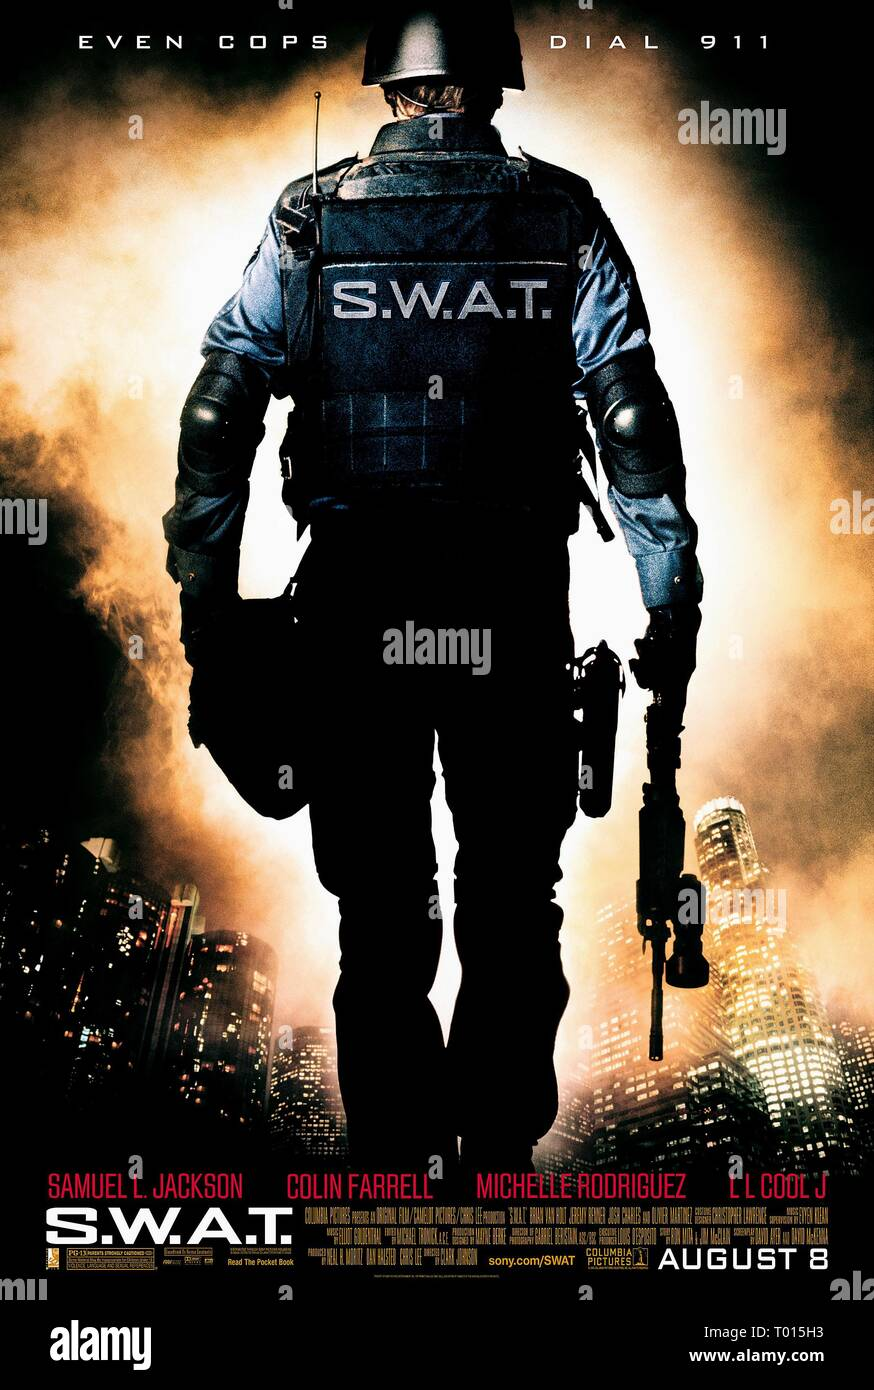 FILM POSTER, S.W.A.T., 2003 - Stock Image